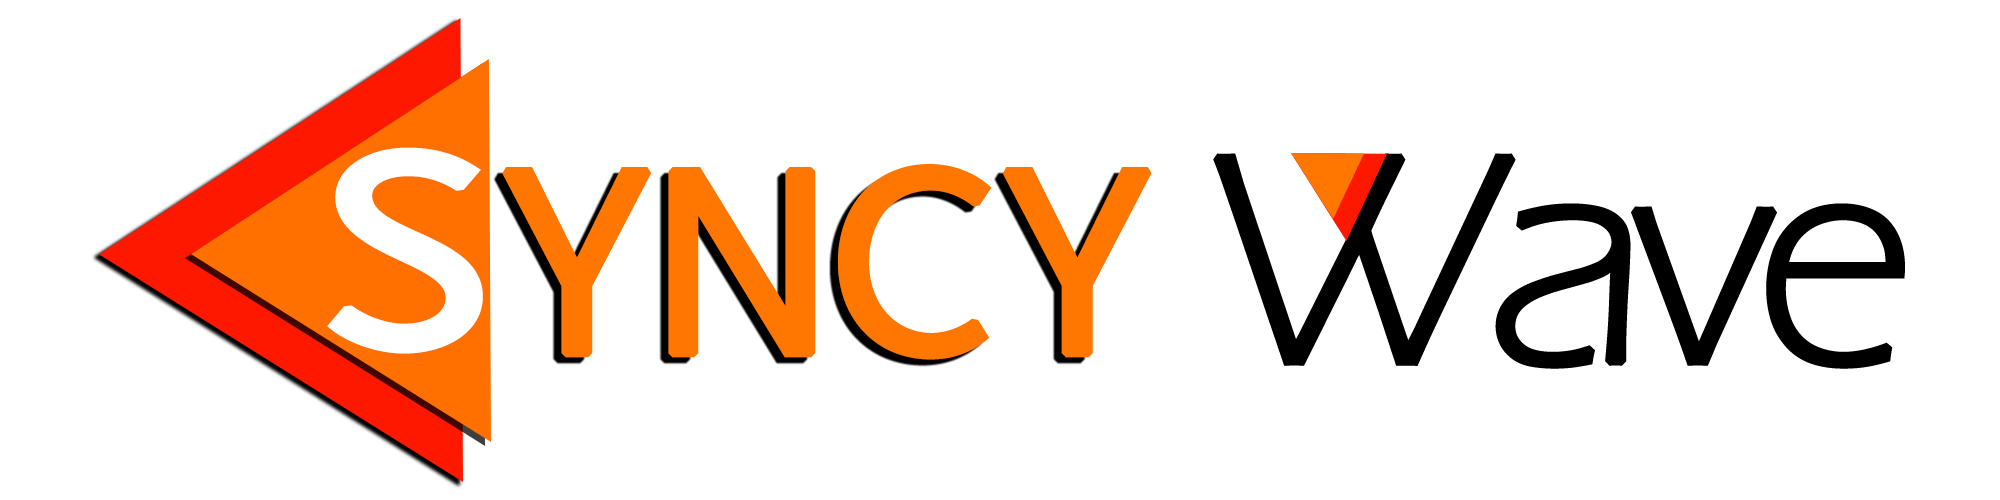 Syncy Wave company logo